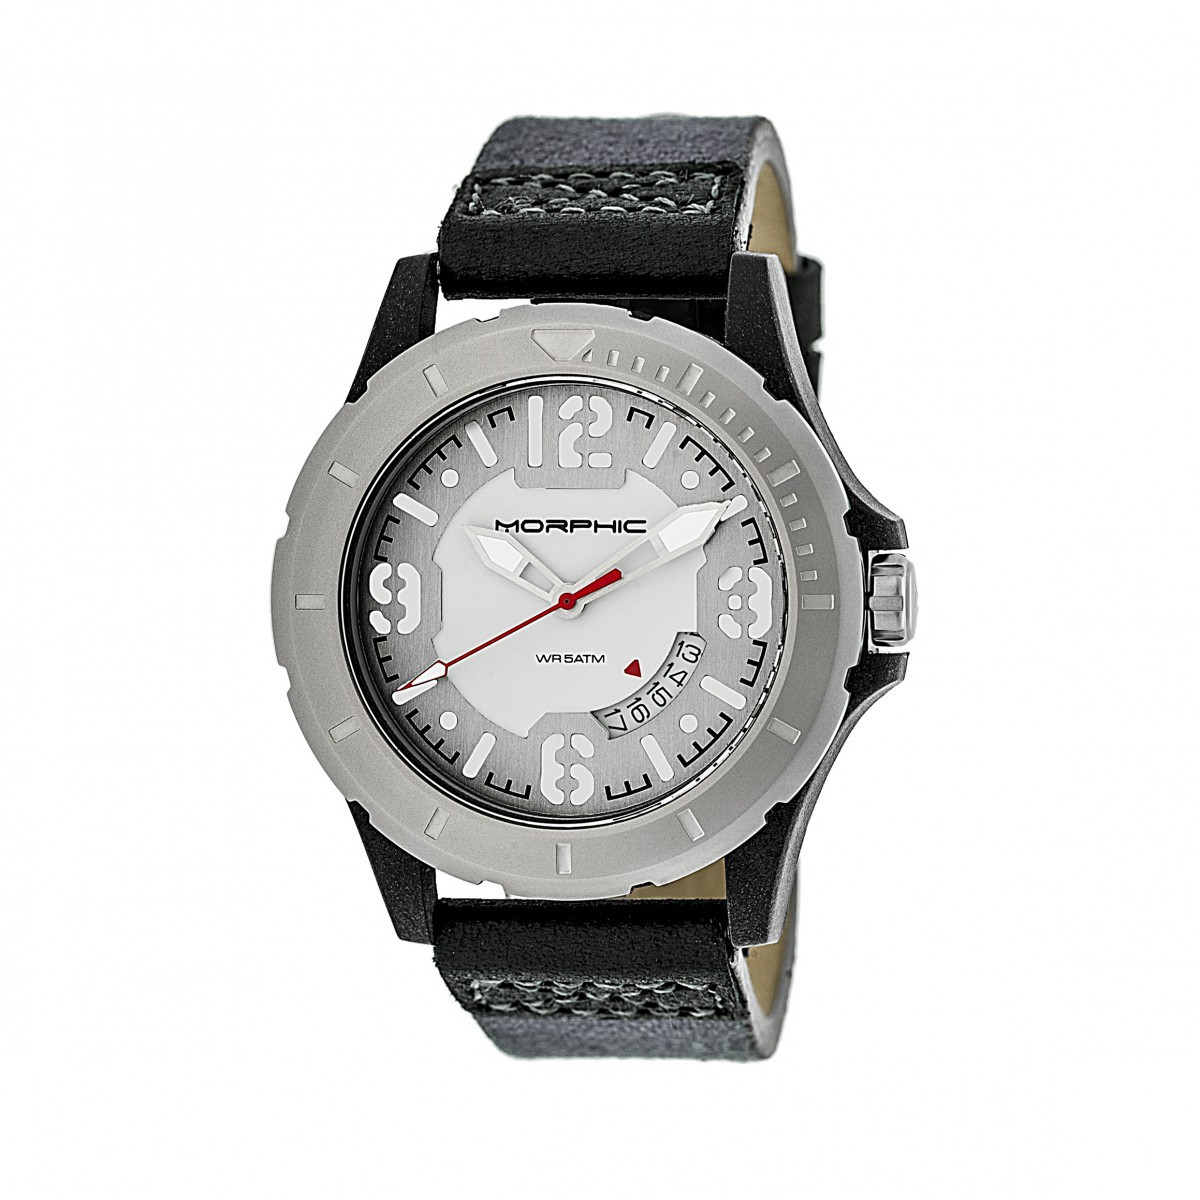 Morphic M47 Series Canvas-Overlaid Leather-Band Watch w/ Date - Grey/White MPH4701